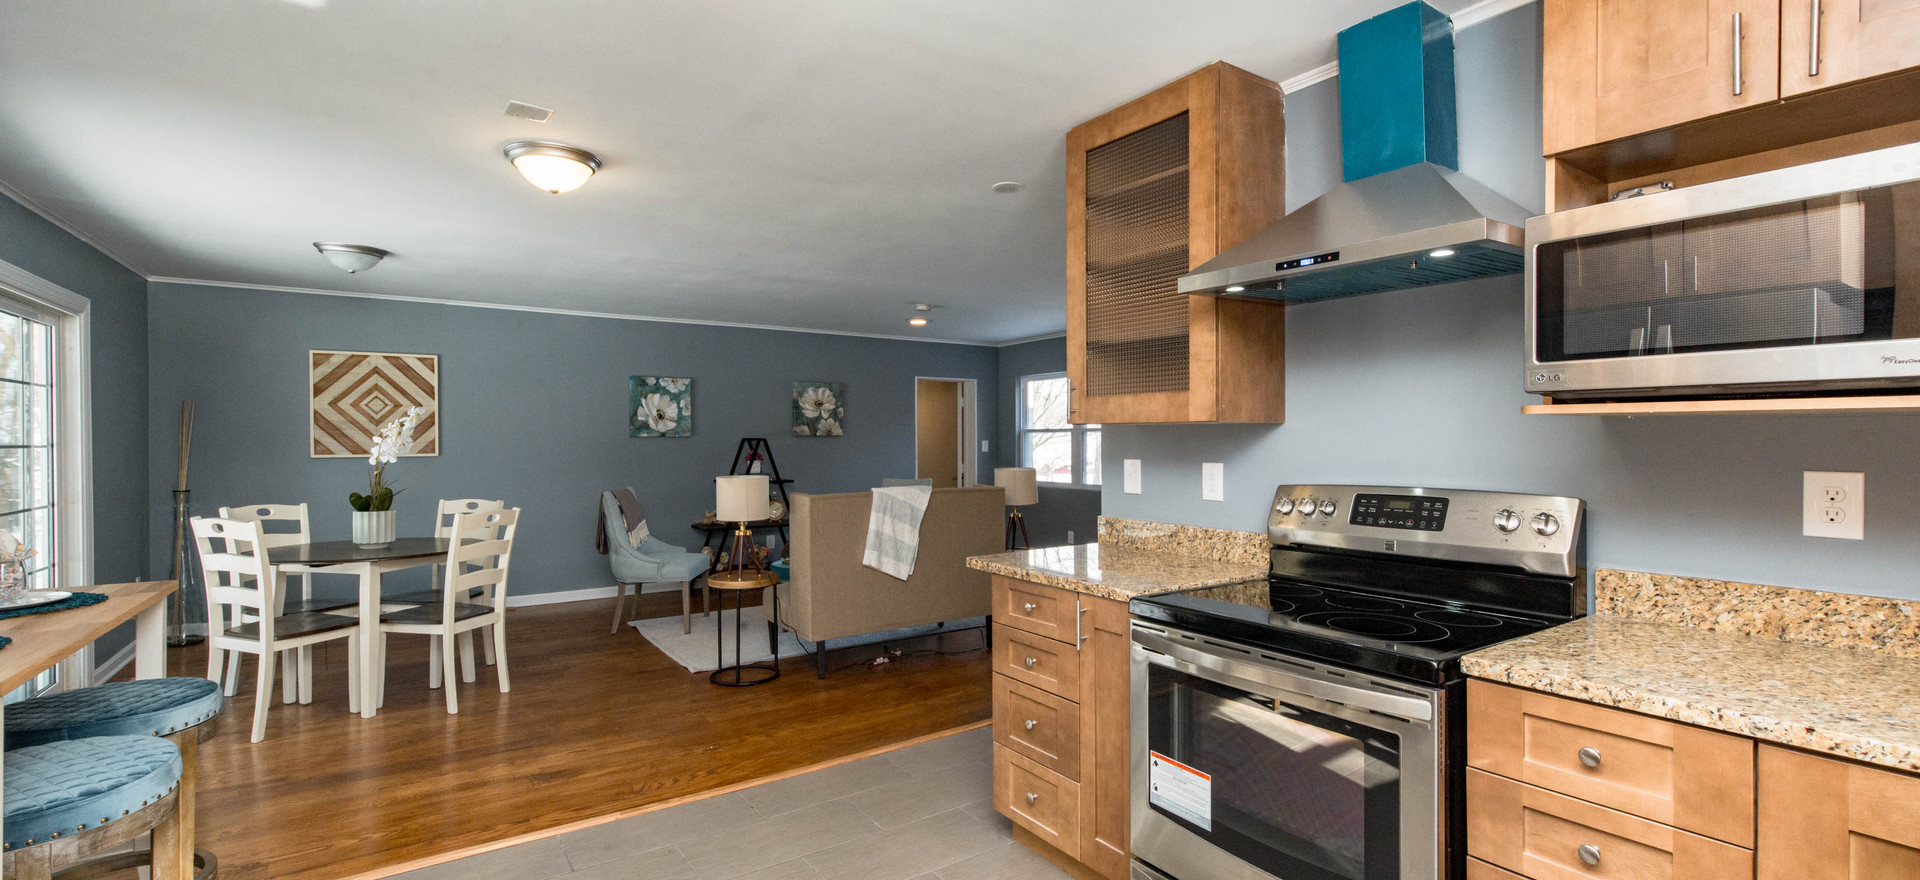 Kitchen/Dining/Living Area (Vacant Staged)